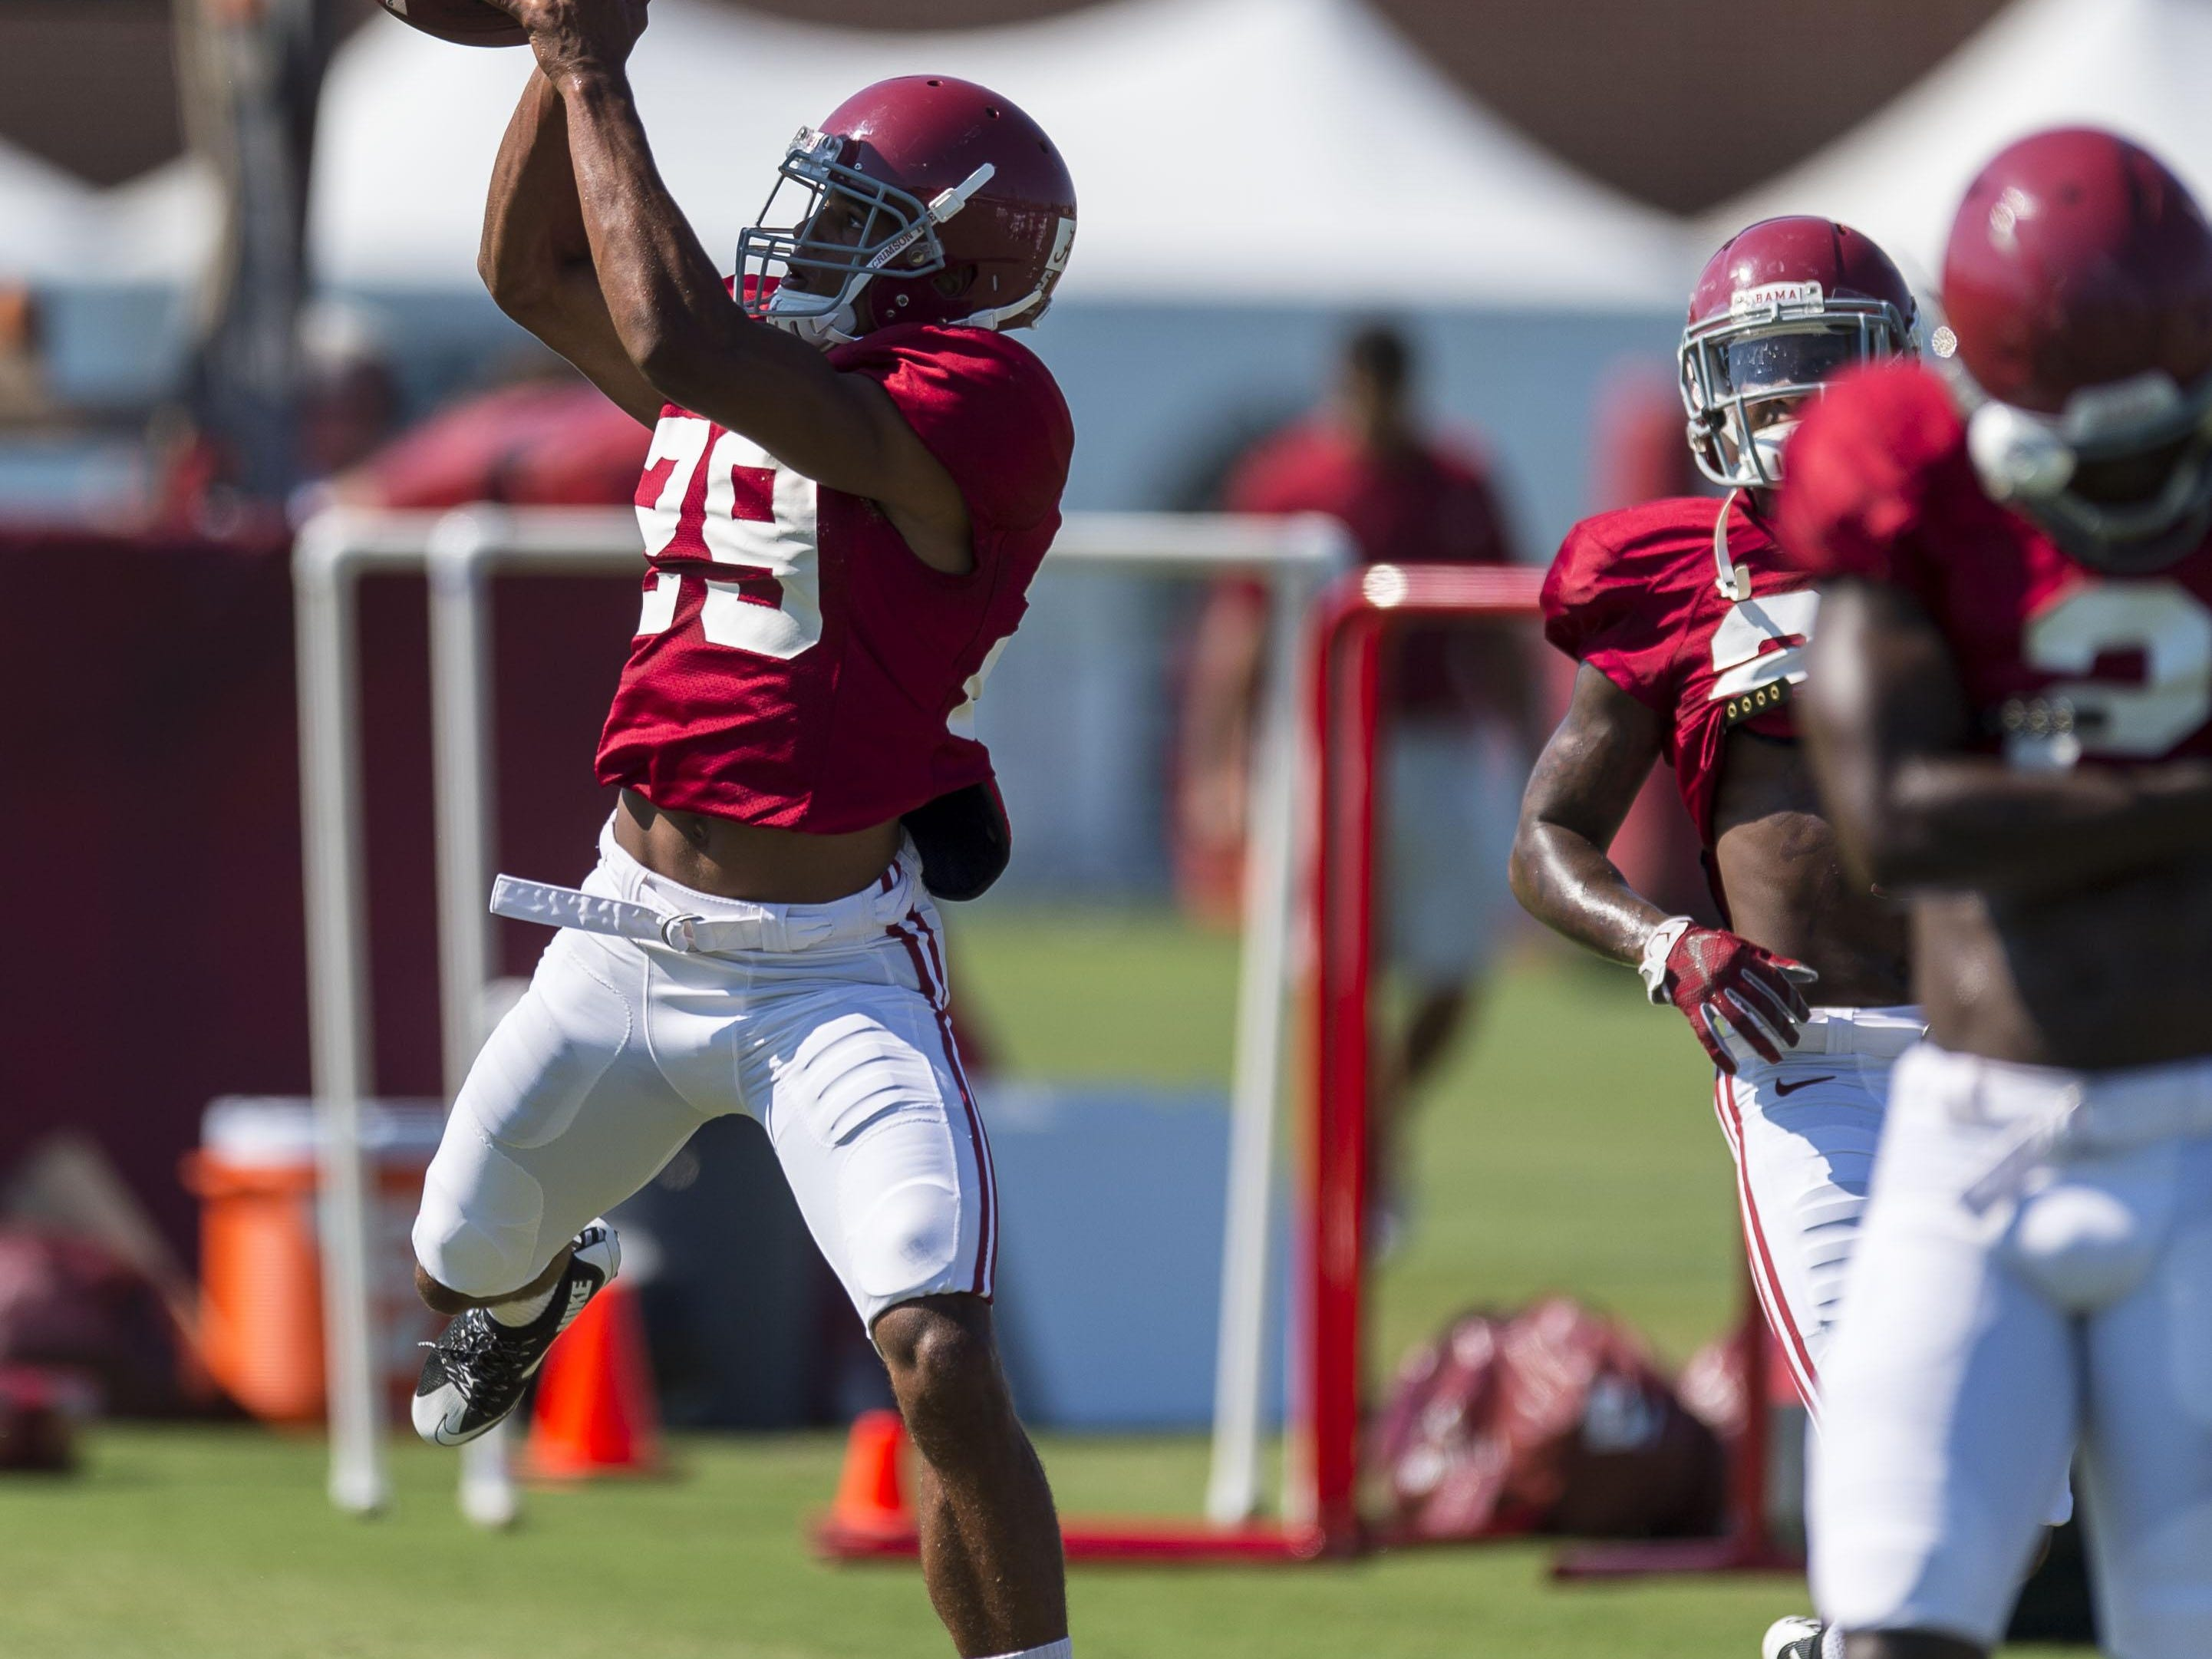 Alabama defensive back Minkah Fitzpatrick (29) works through drills during practice Thursday at the Thomas-Drew Practice Fields in Tuscaloosa.